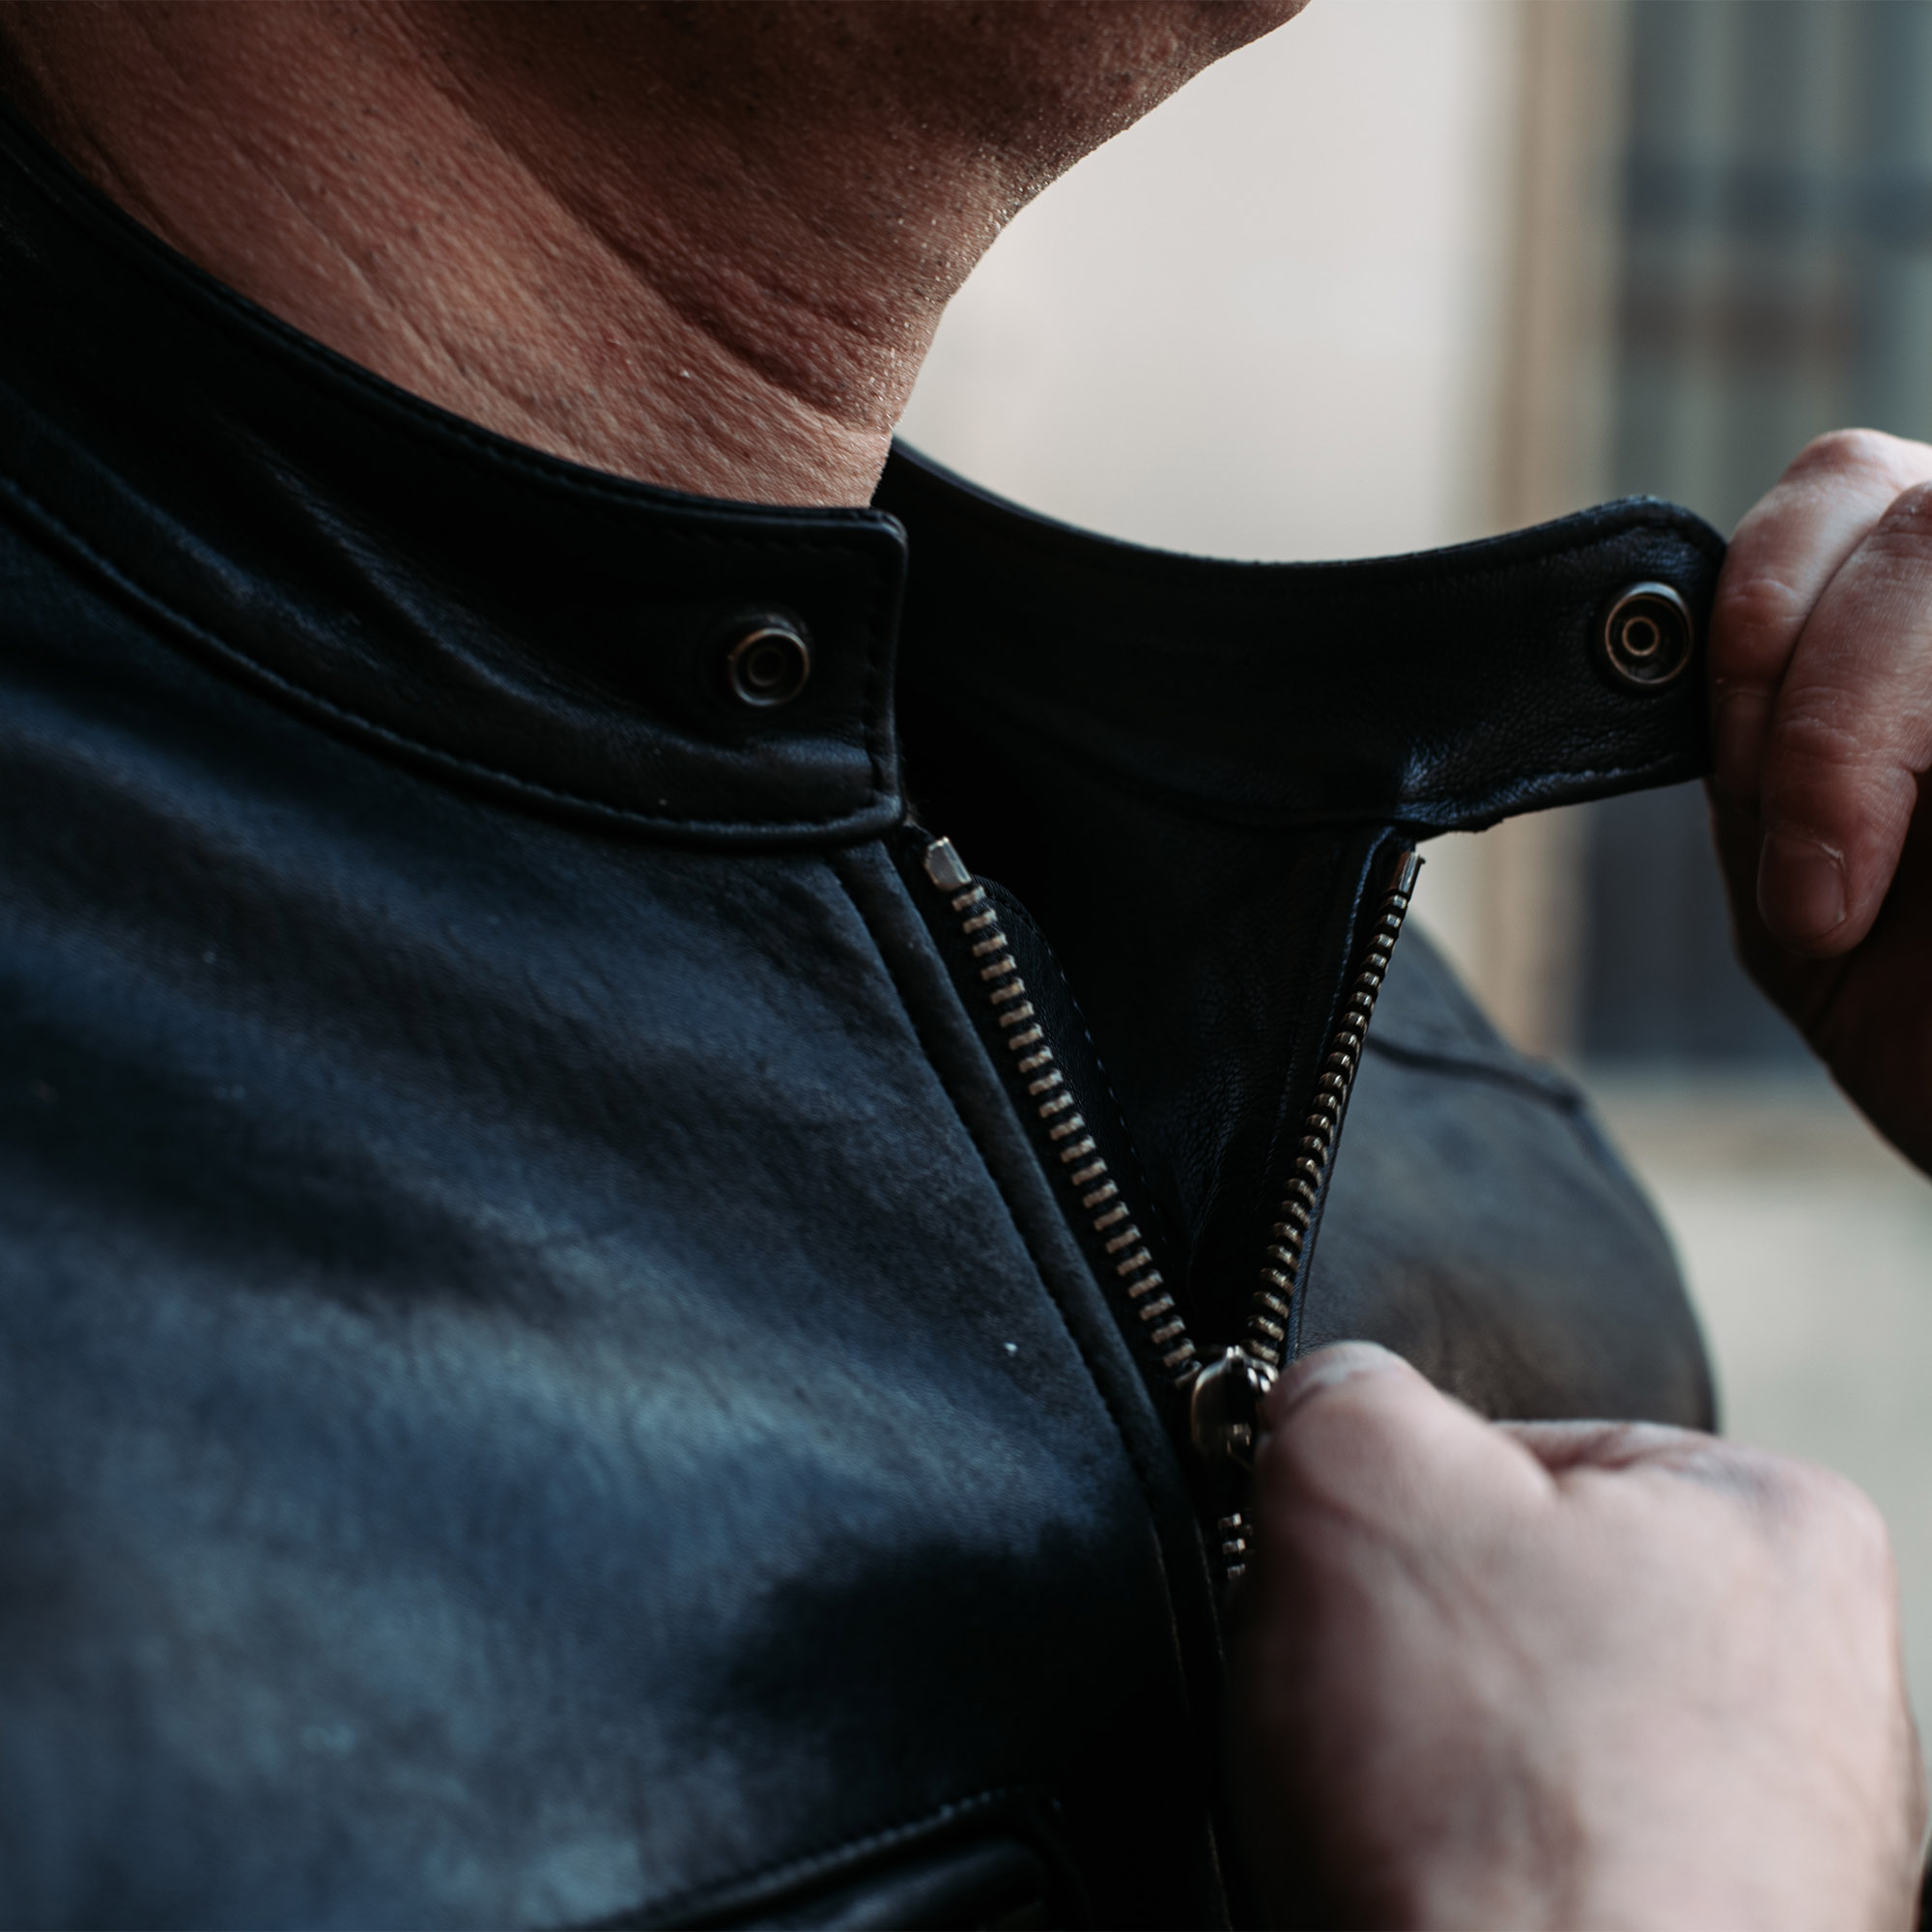 shangri-la-heritage-cafe-racer-black-lambskin-leather-jacket-lifestyle-5